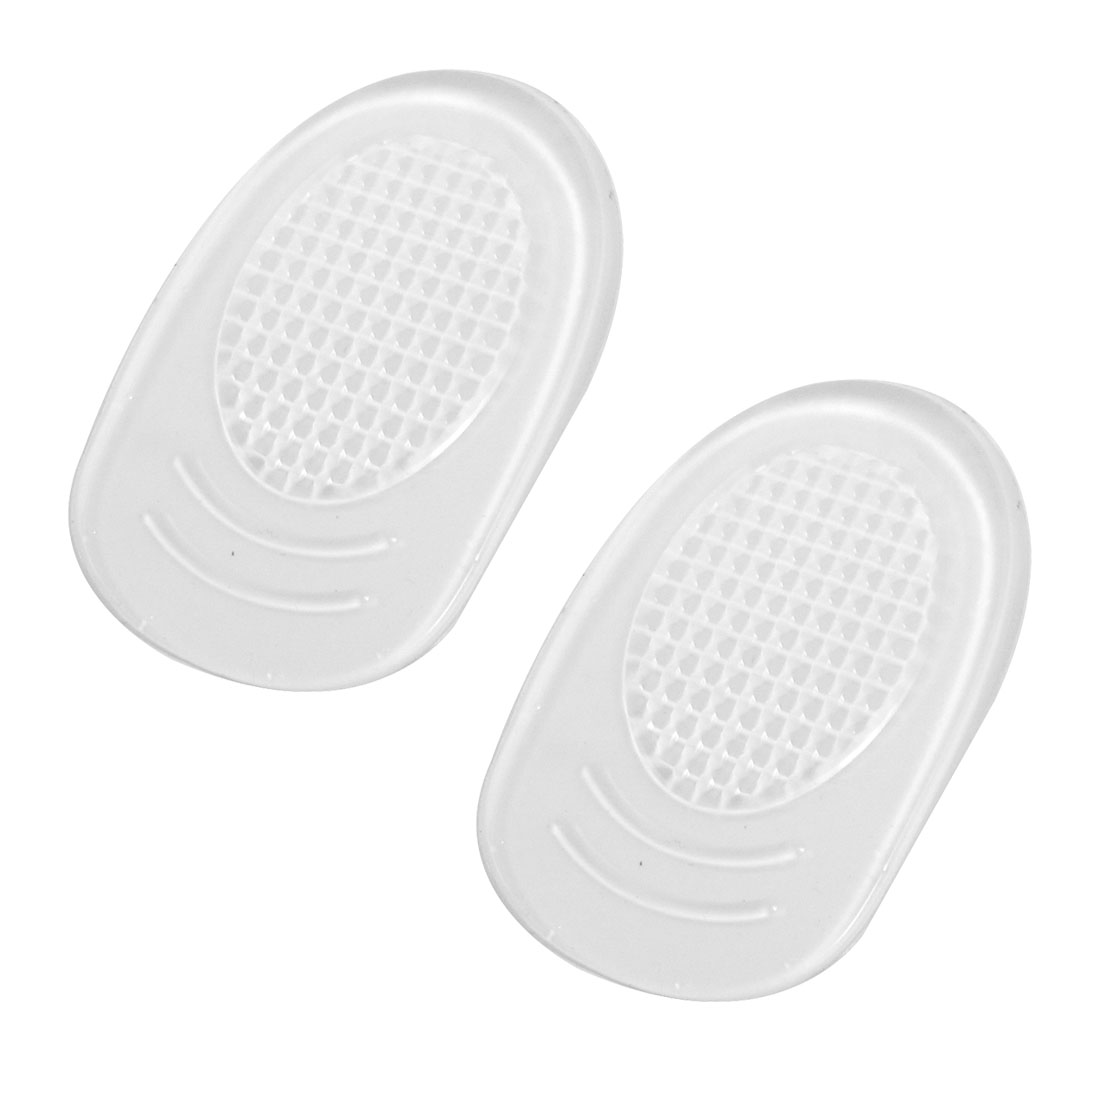 Pair Self Adhesive Silicone Heel Pads Cushions Clear for Ladies